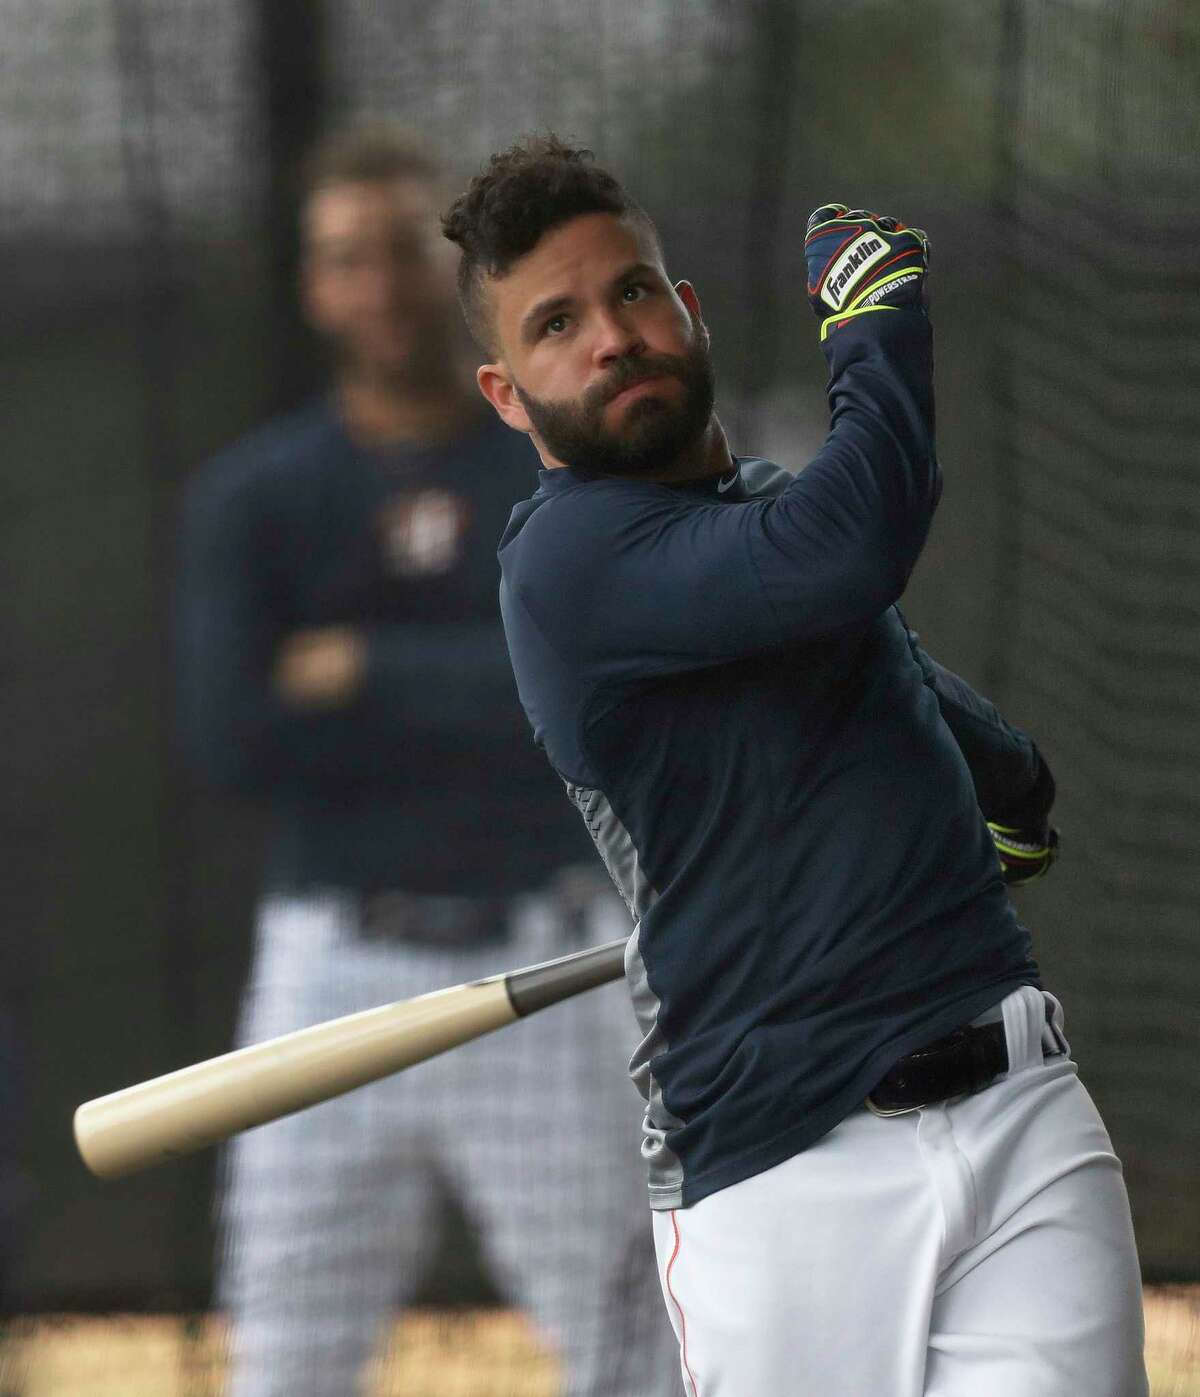 Houston Astros second baseman Jose Altuve (27) hits balls in the batting cage during spring training at The Ballpark of the Palm Beaches, in West Palm Beach, Florida, Wednesday, February 22, 2017.